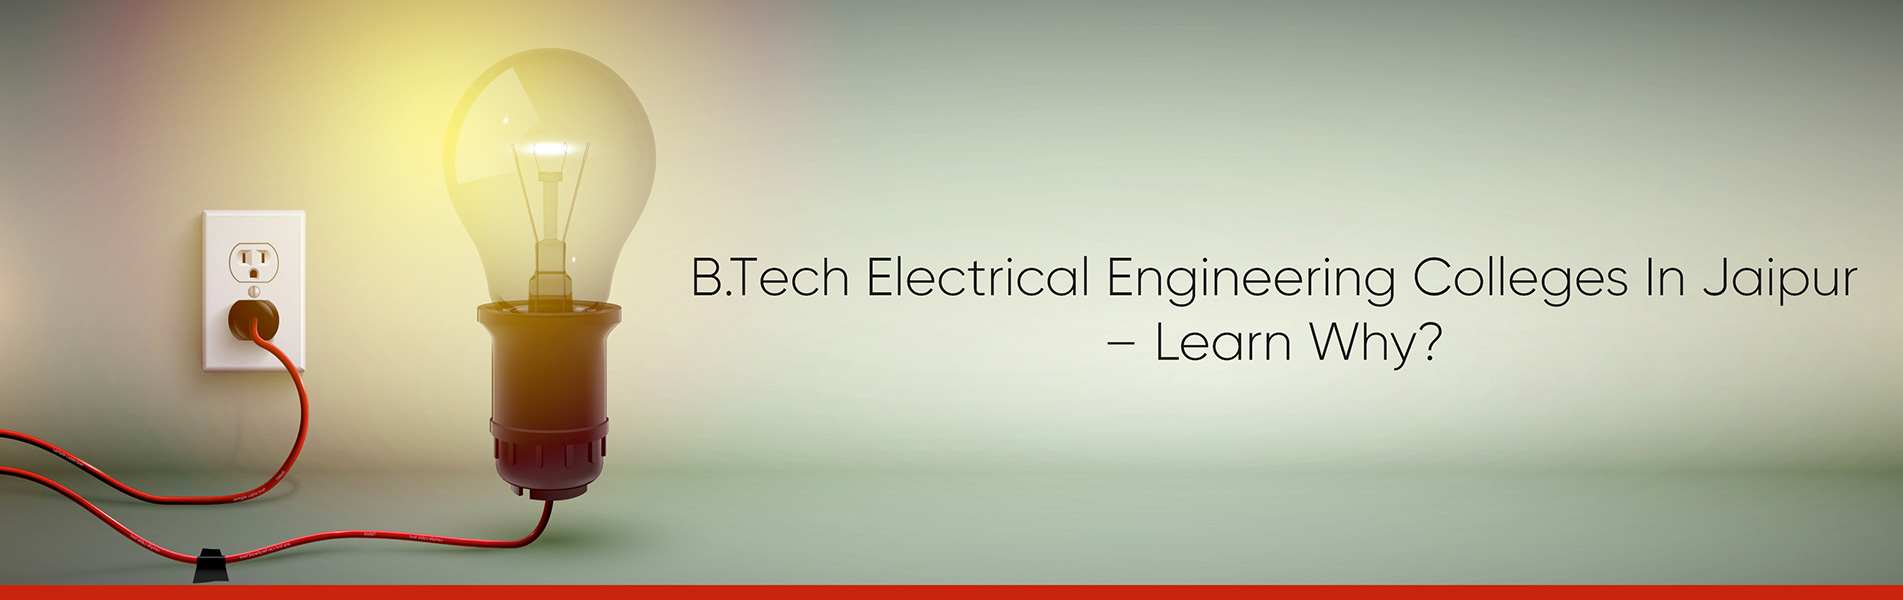 BTech electrical engineering colleges